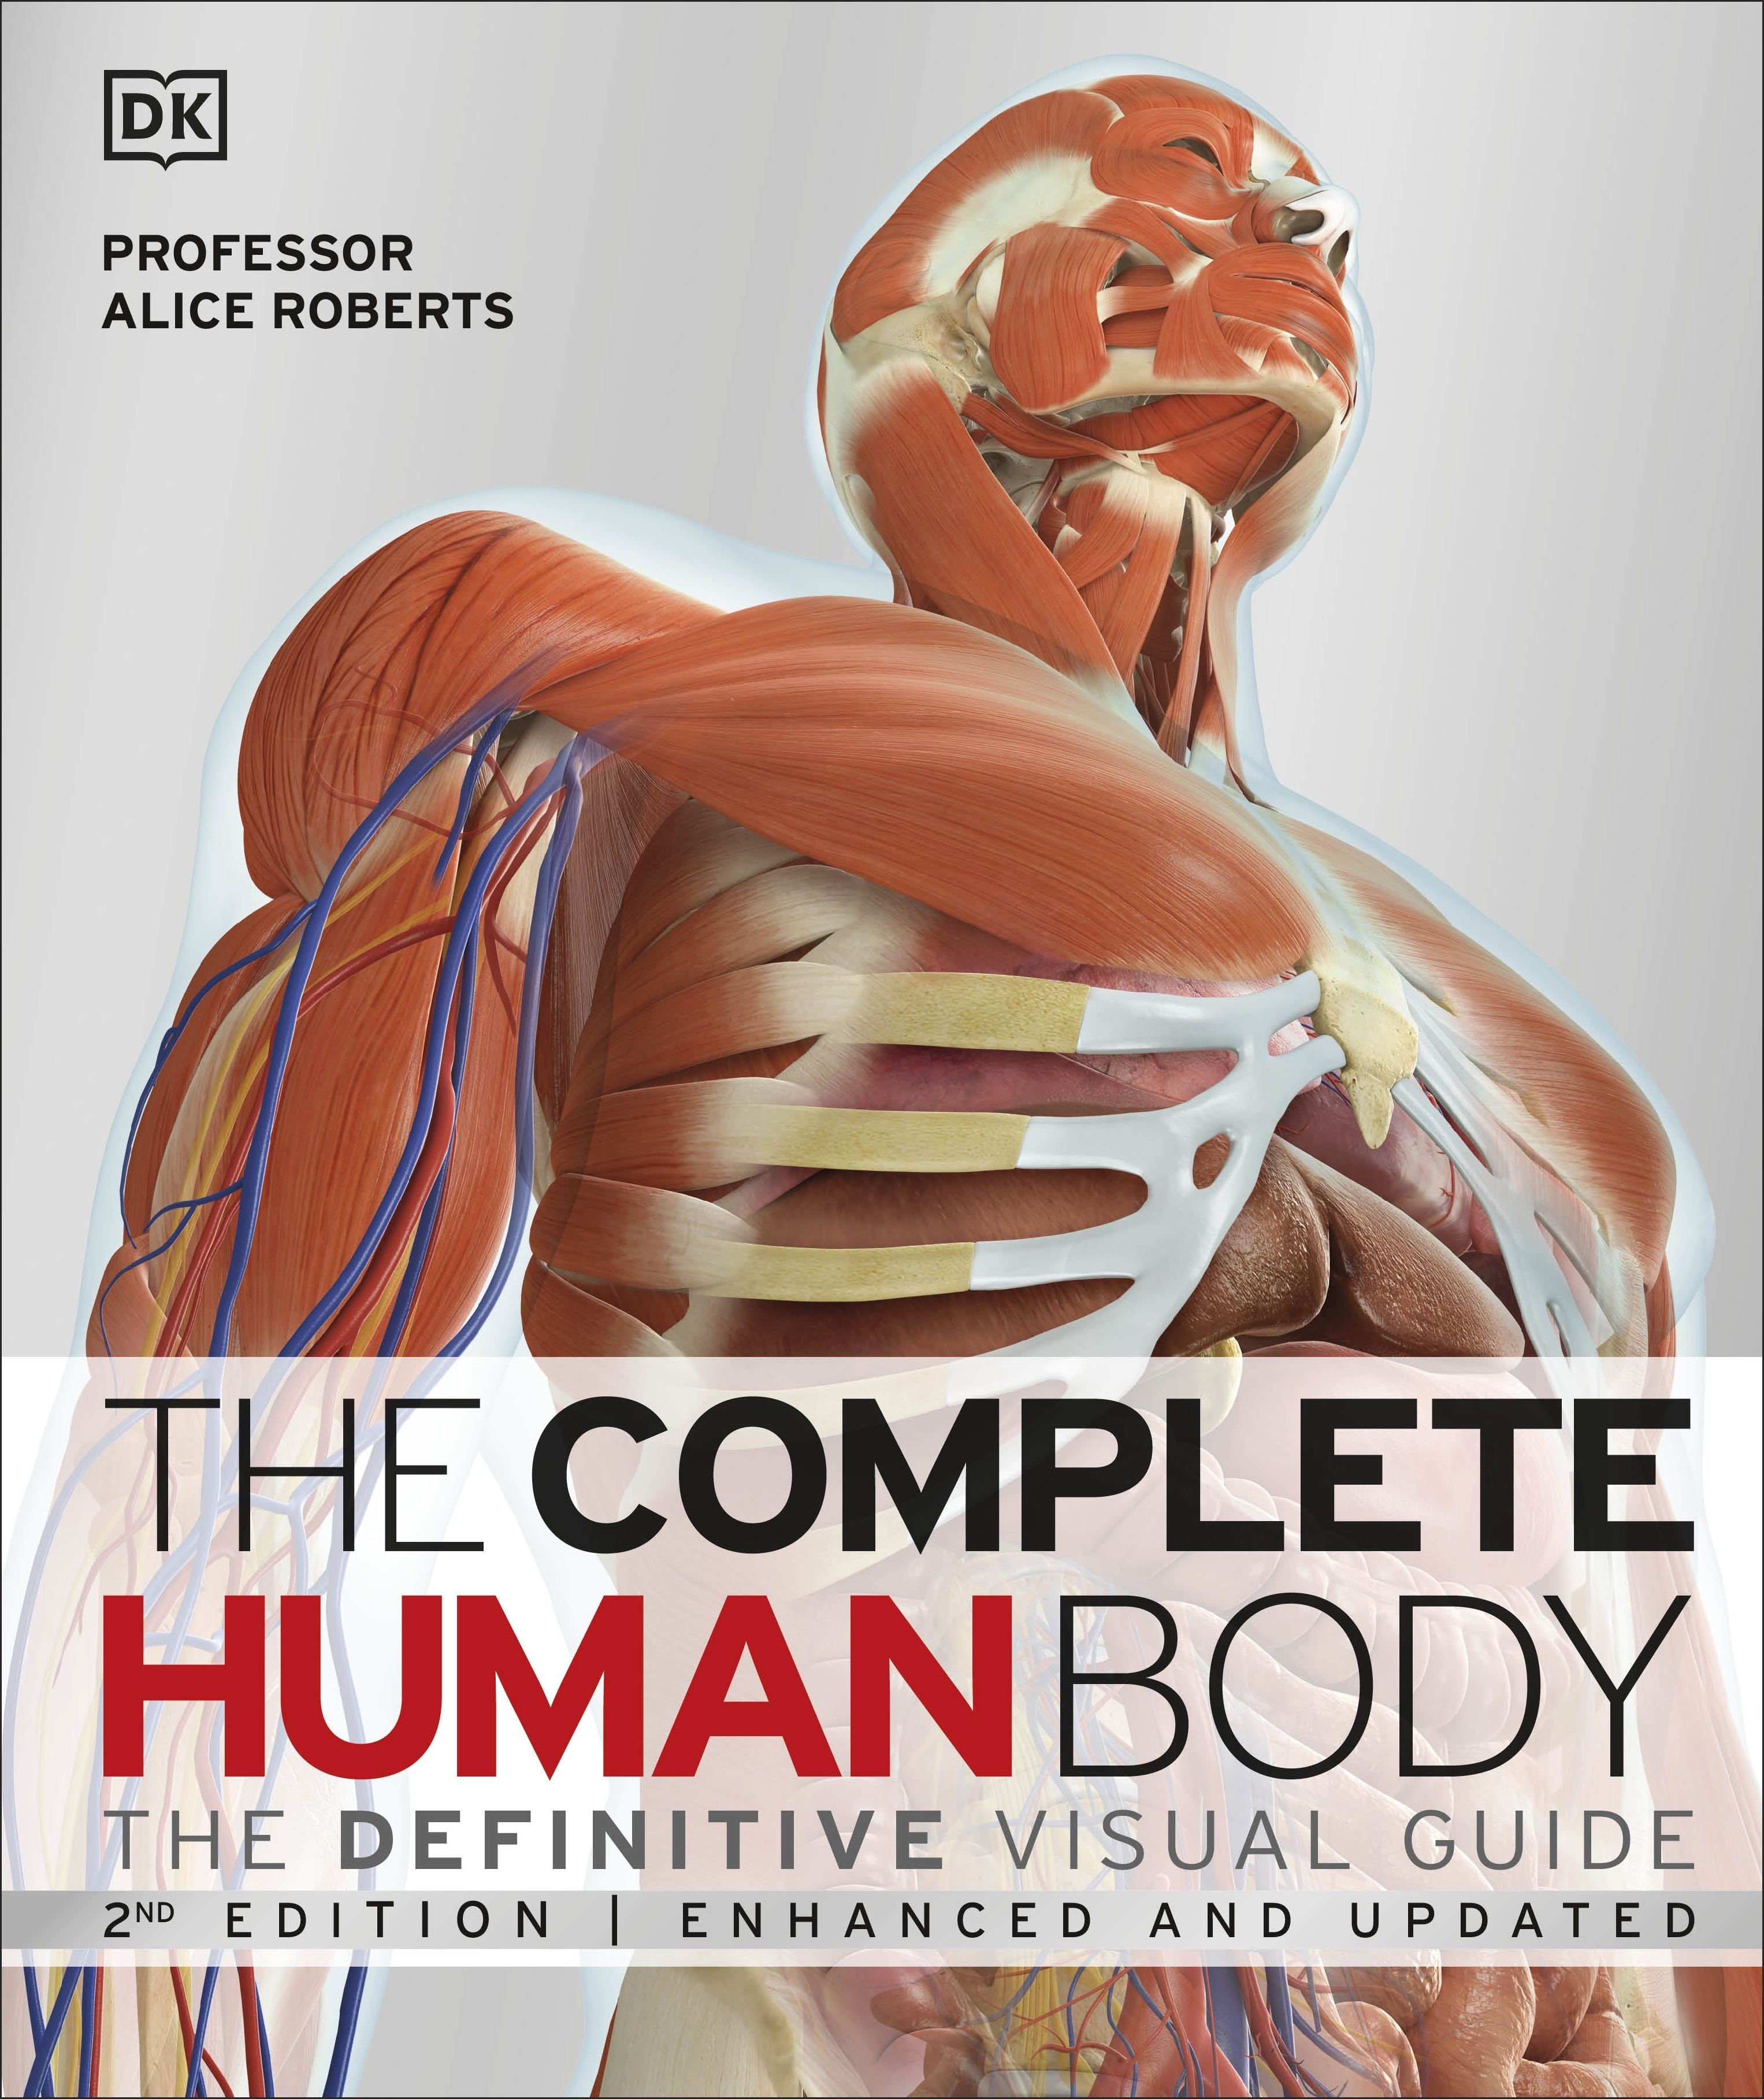 The Complete Human Body By Alice Roberts Penguin Books New Zealand